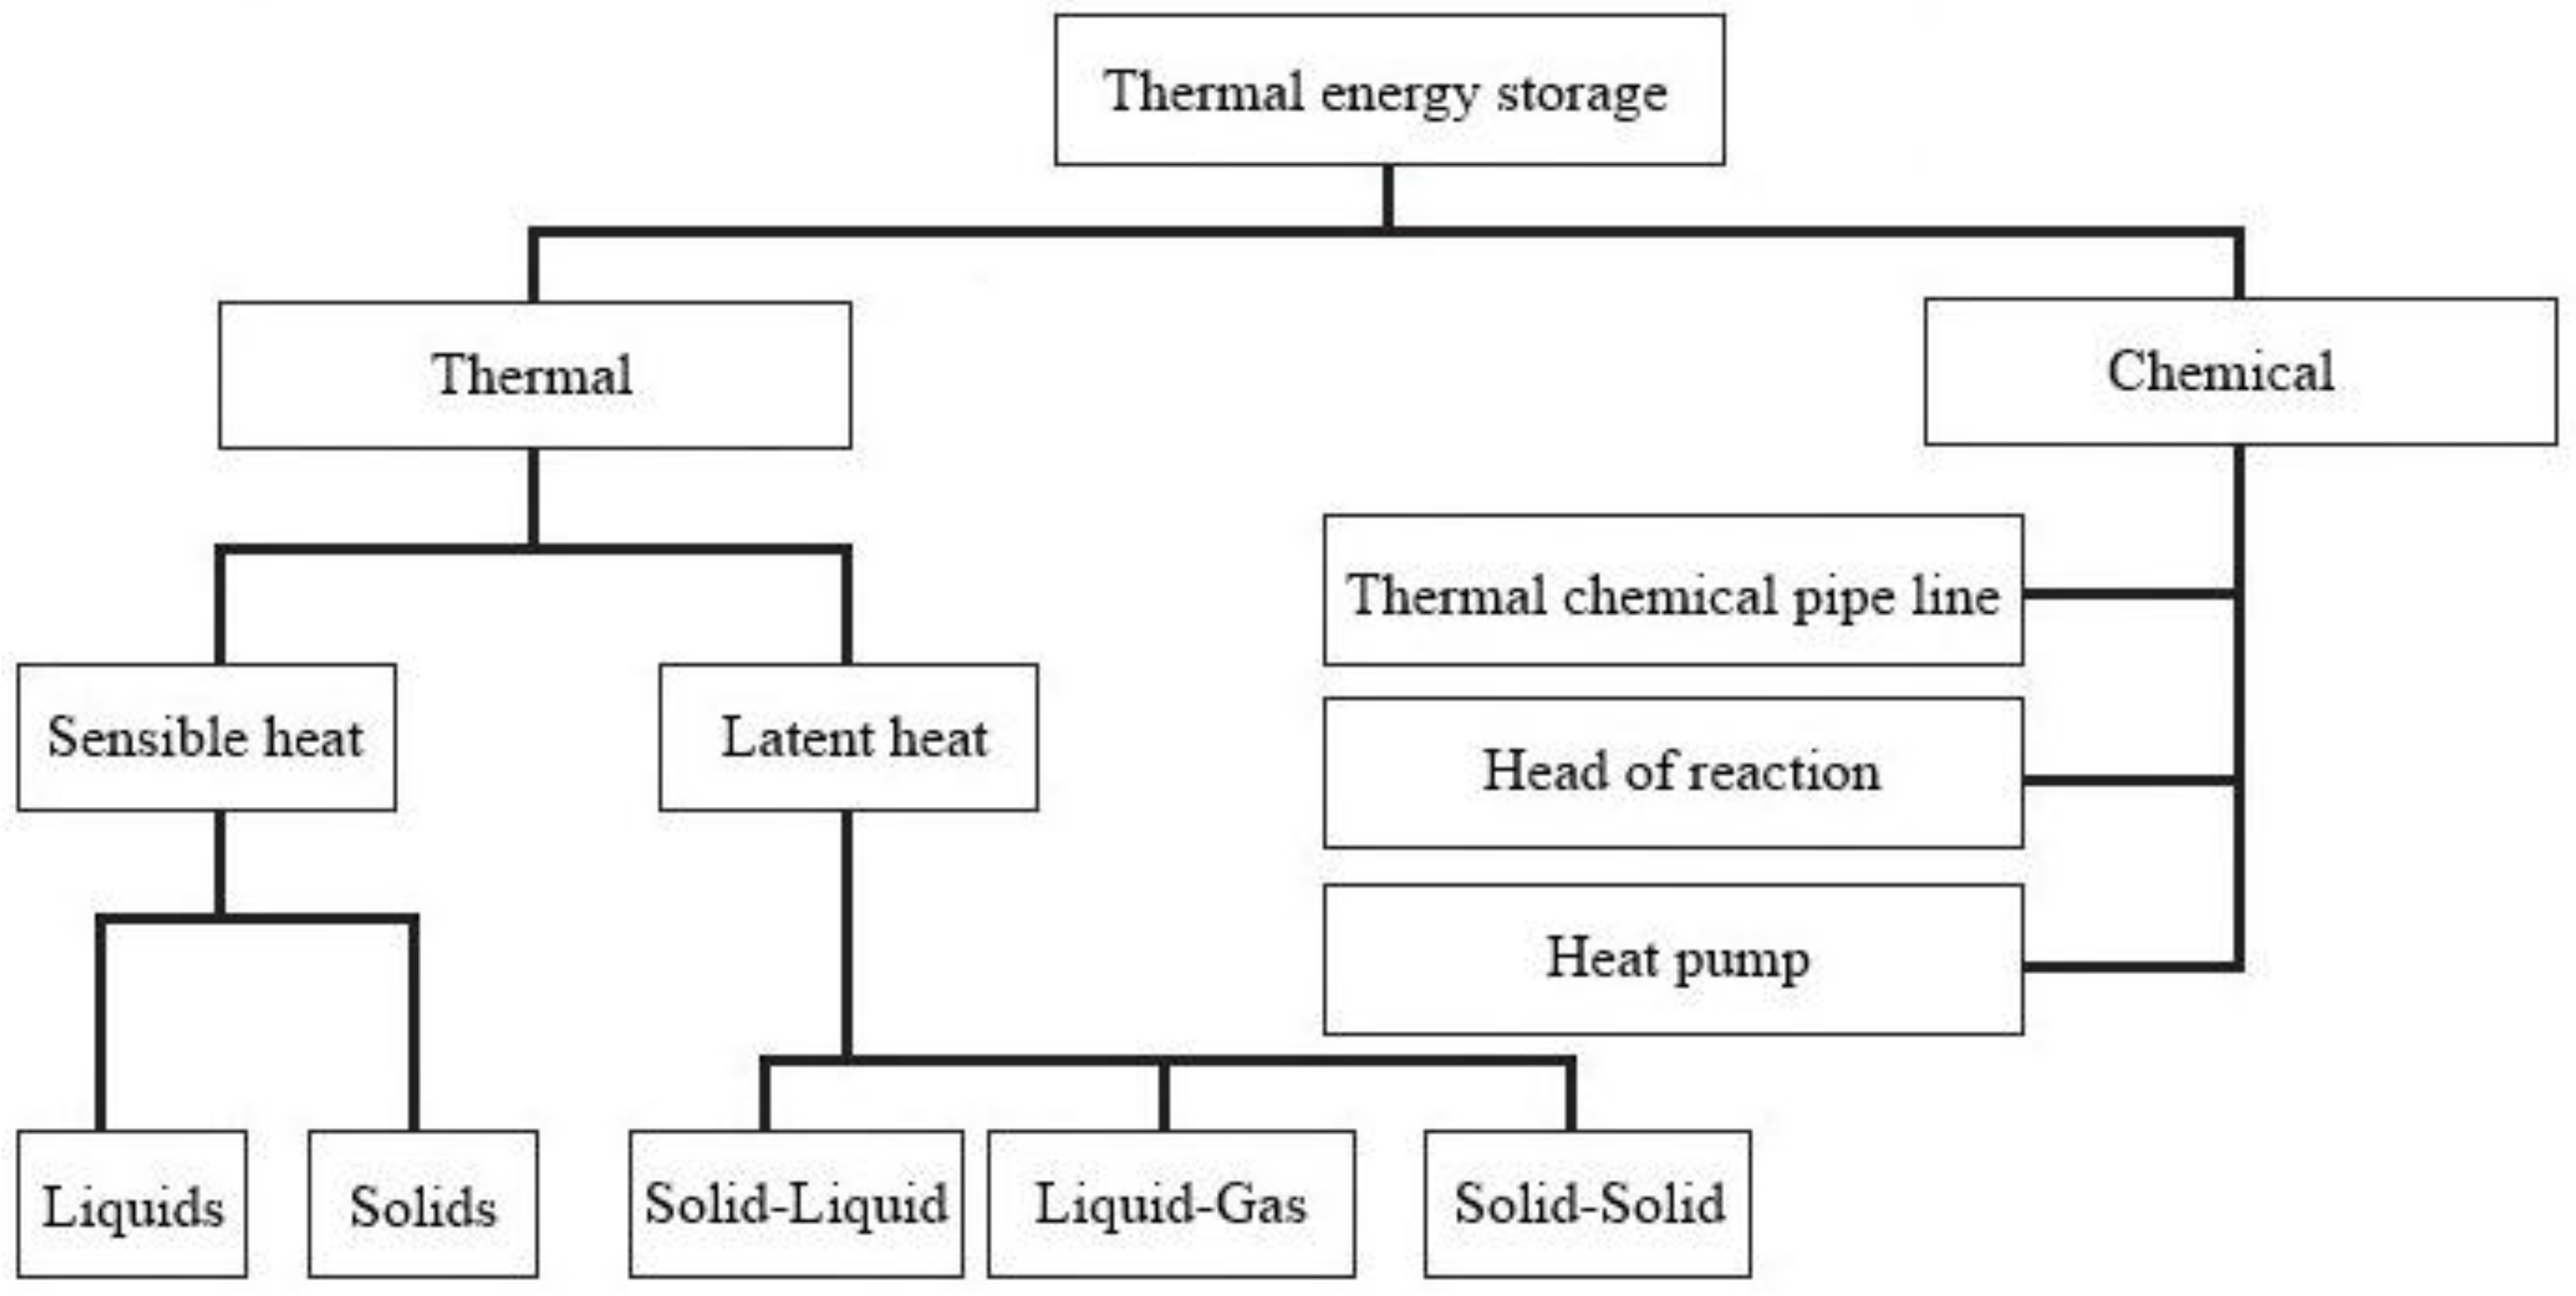 loosely coupled heat tranfer analyses